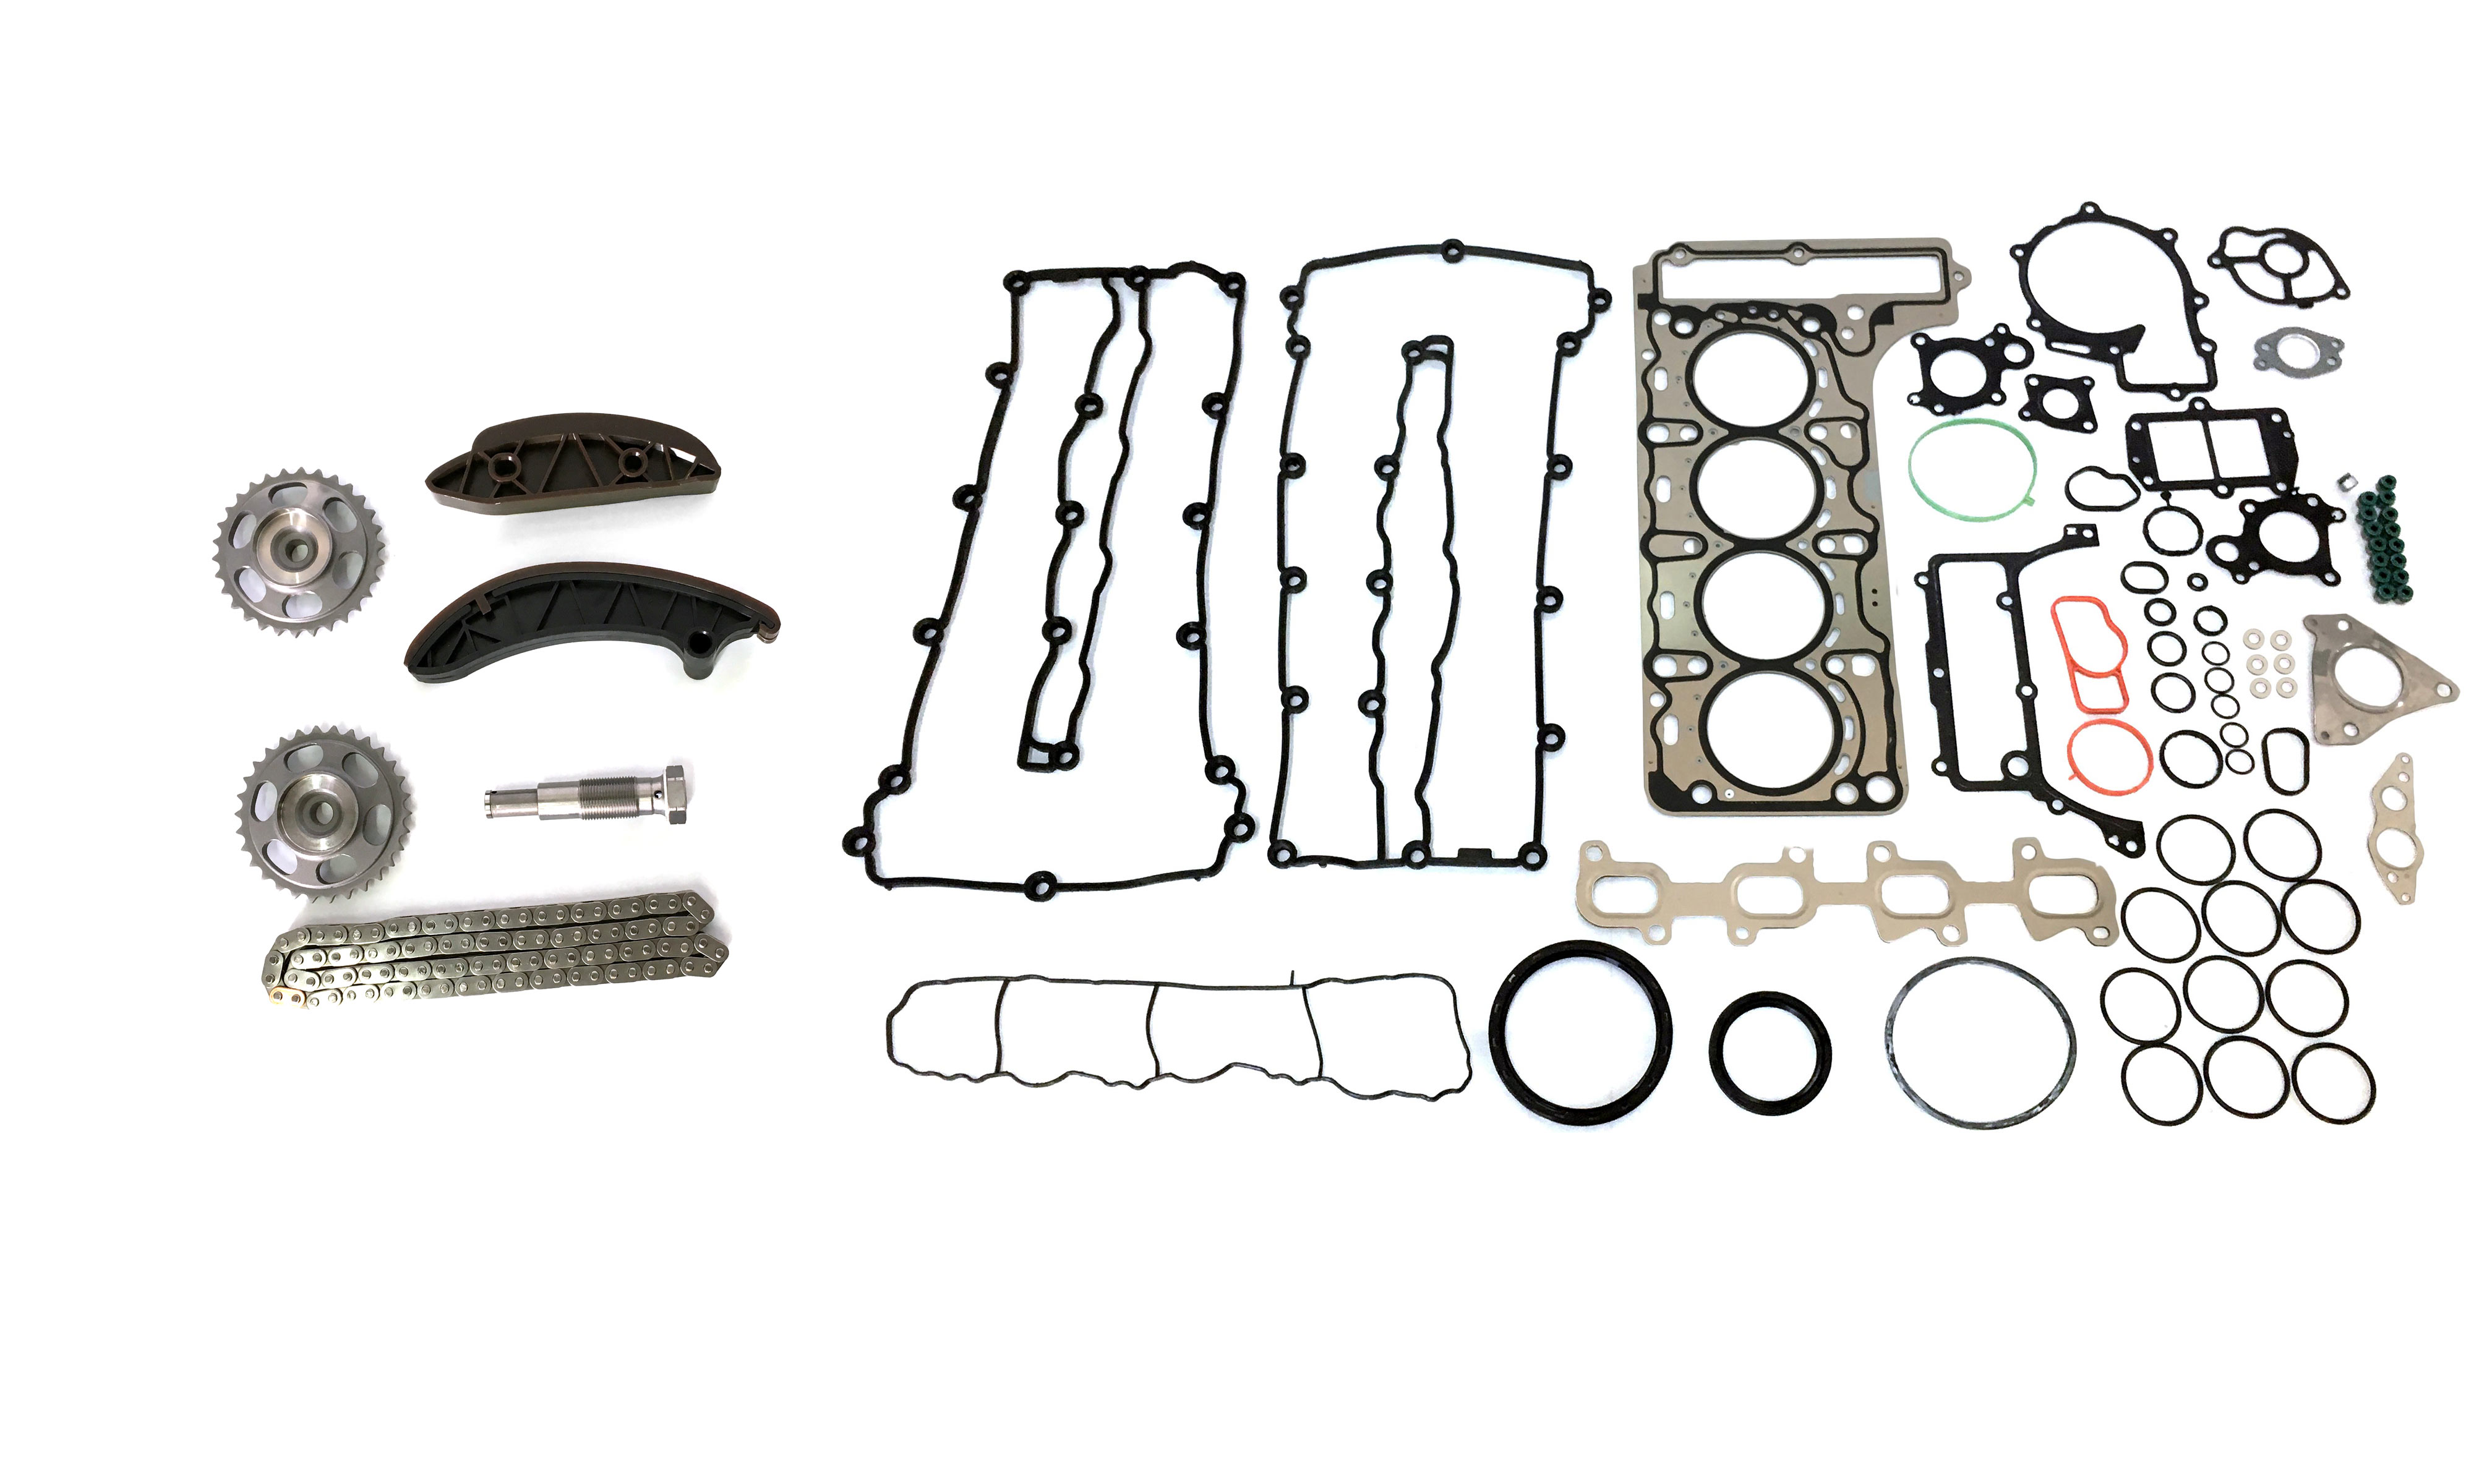 Cylinder head gasket Timing chain set Mercedes-Benz C-class the 2.2 CDI OM651 NEW